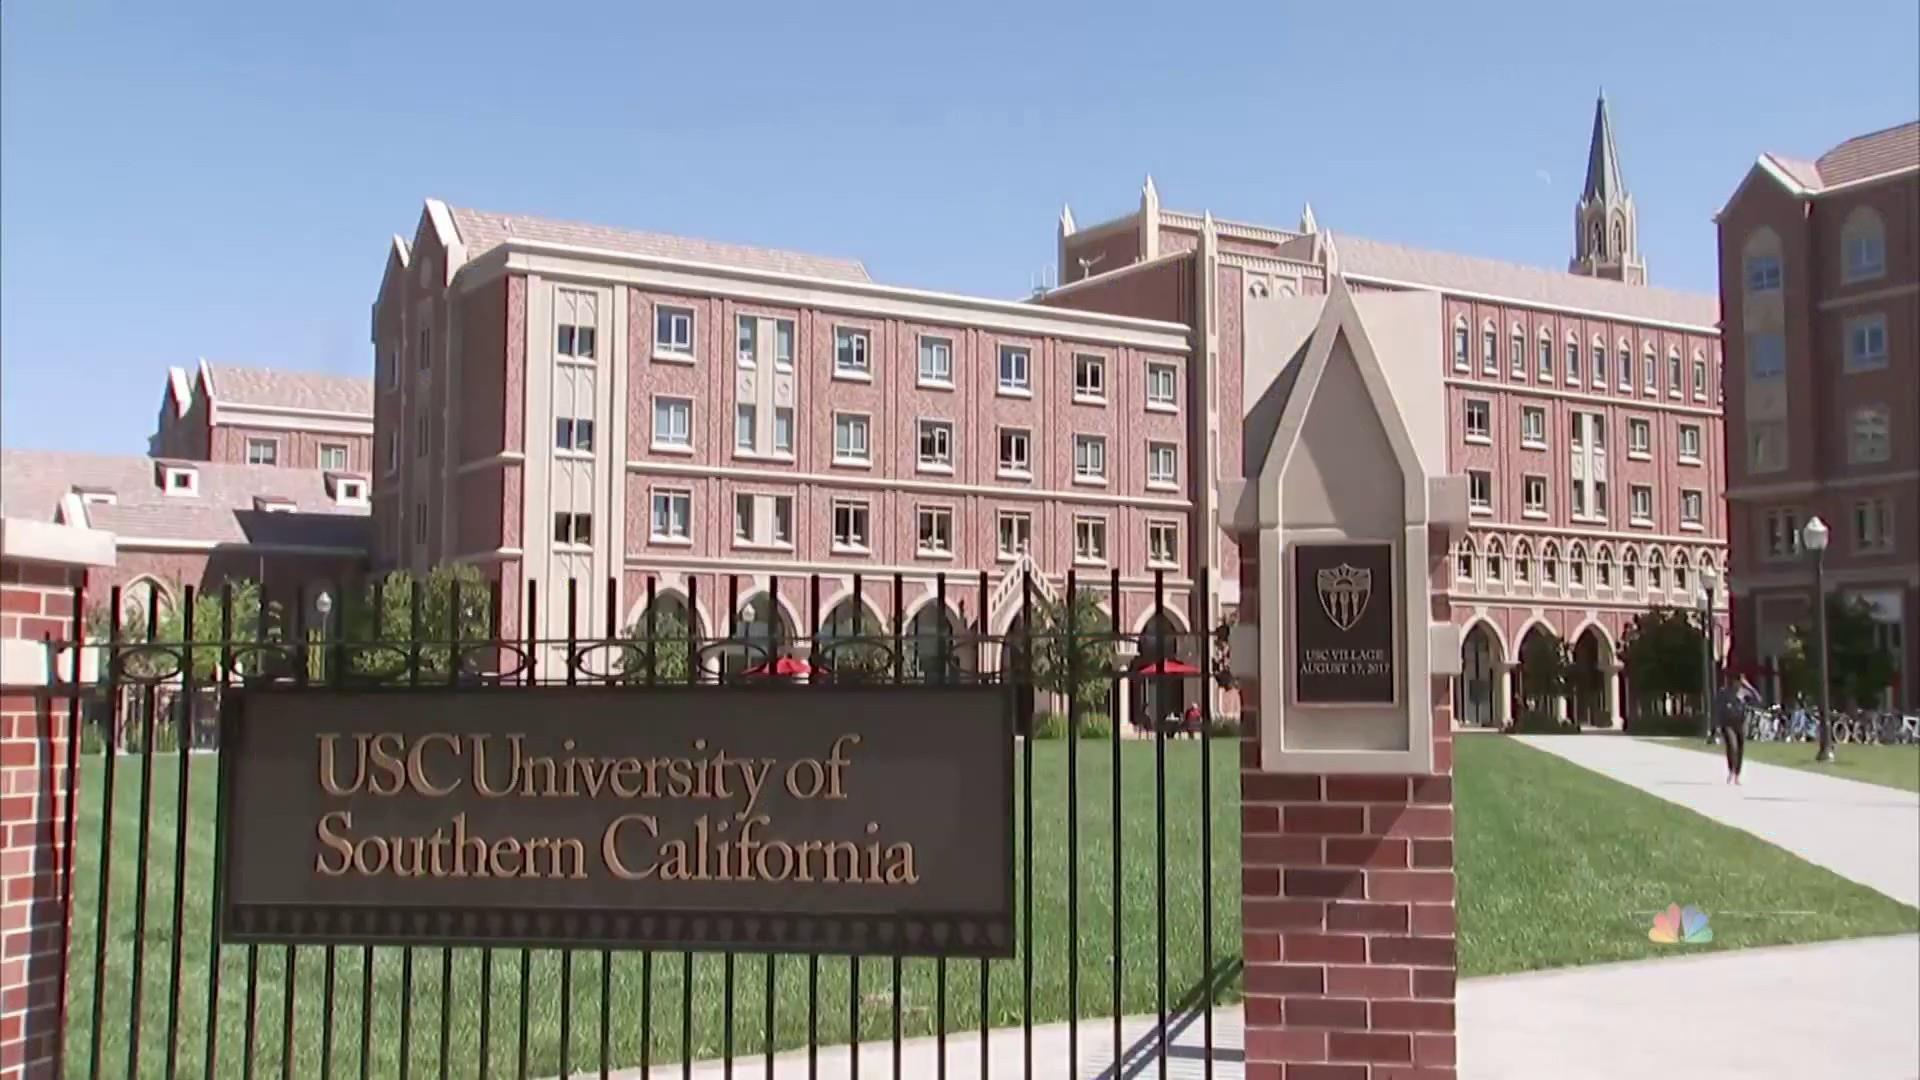 USC students linked to admissions scandal can't enroll in classes, get transcripts, university says